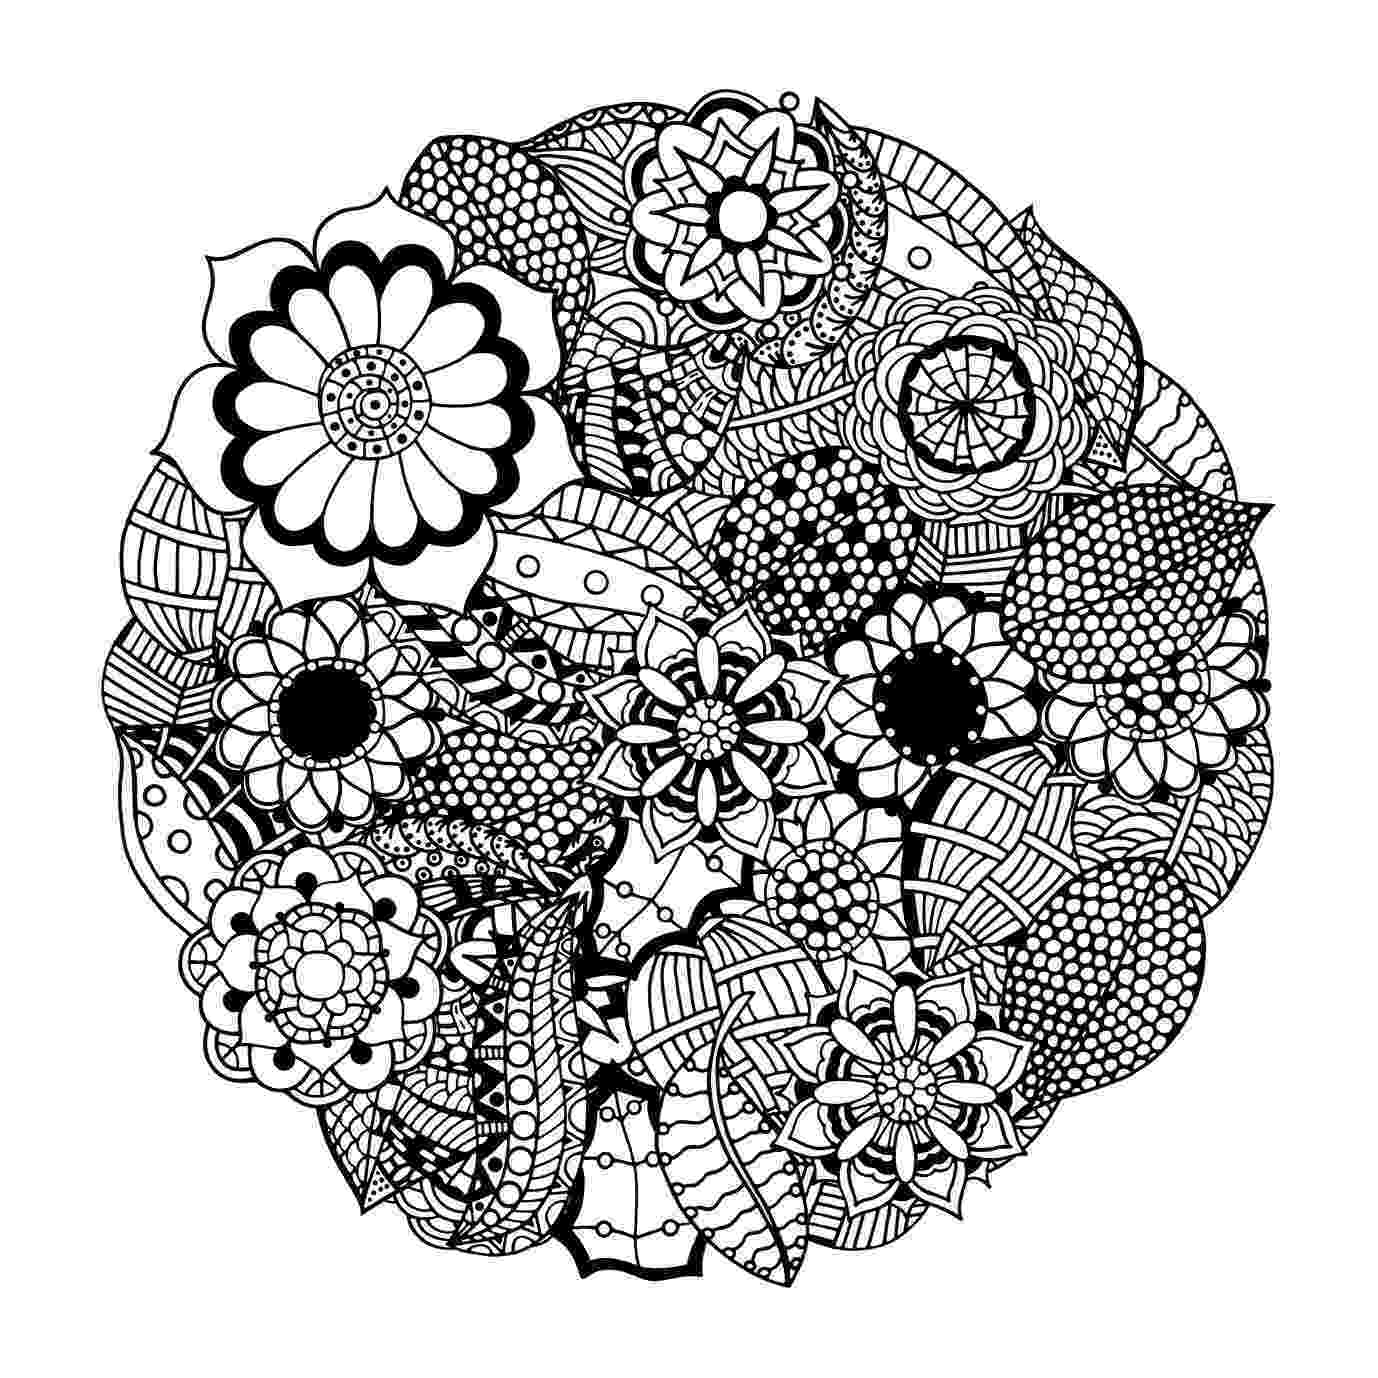 mandala coloring pages for adults free mandala harmony and complexity difficult mandalas for mandala pages coloring free adults for